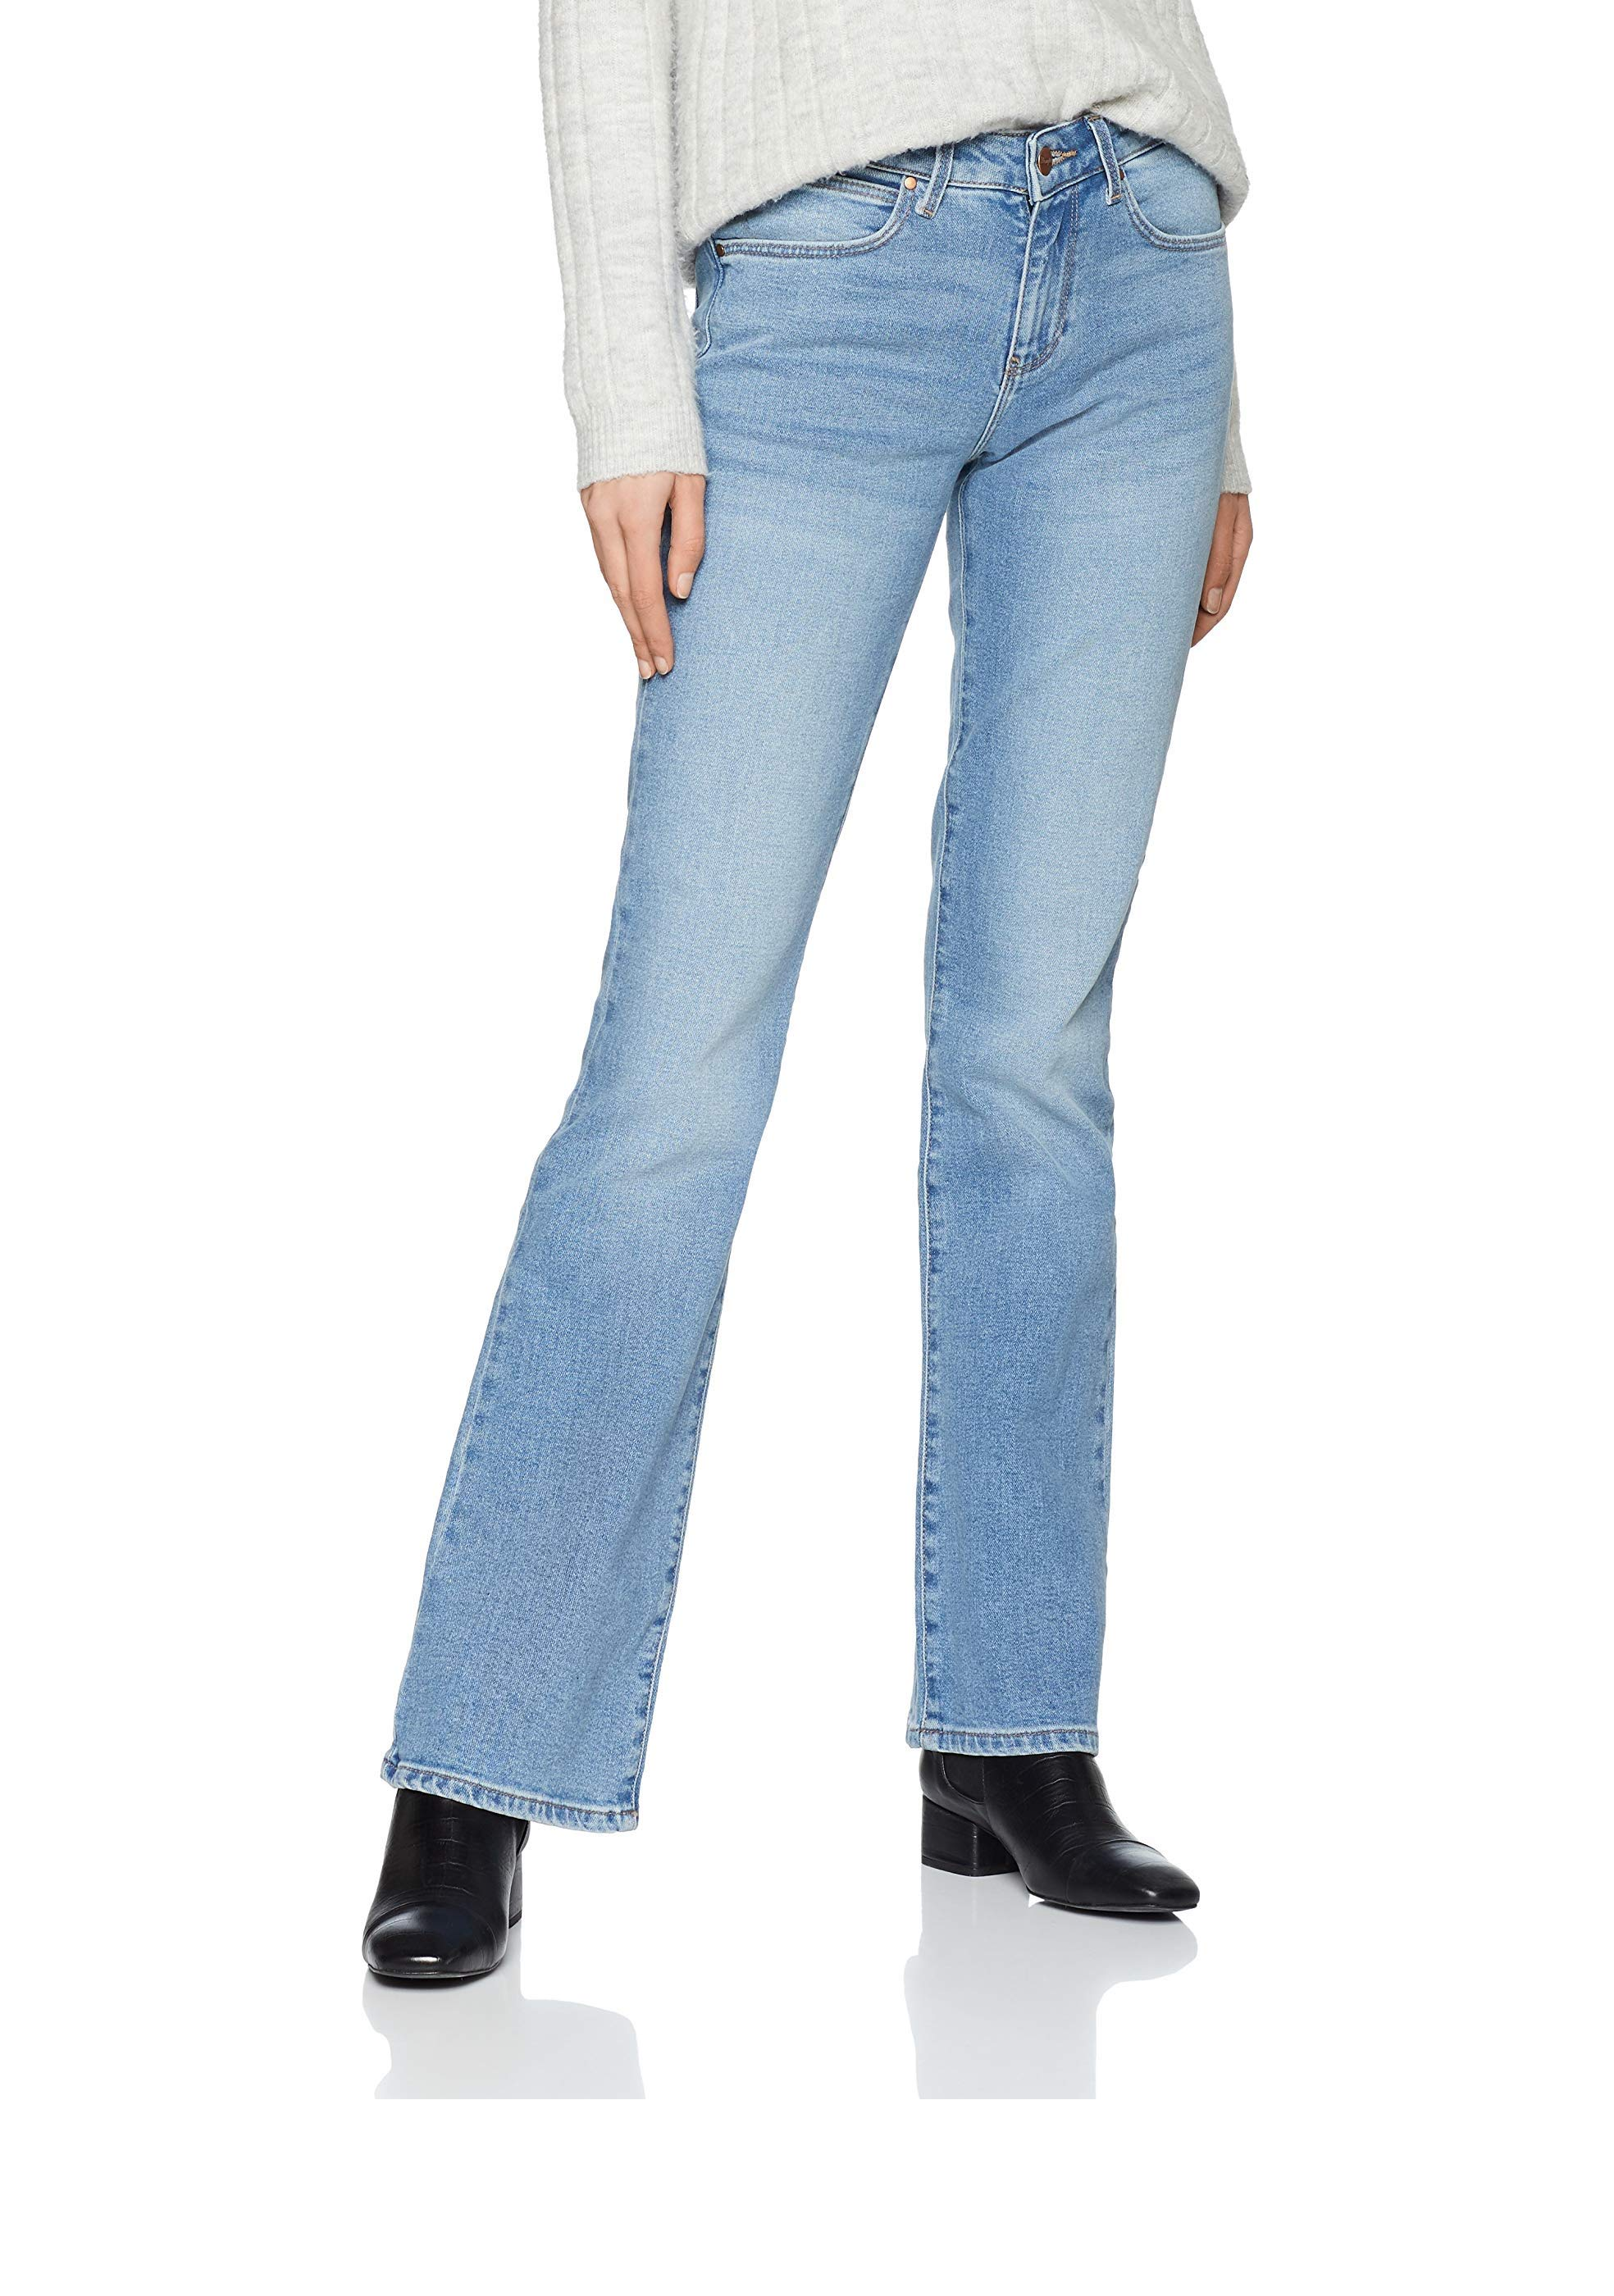 924e07f13cd57 Women's Jeans: Amazon.co.uk